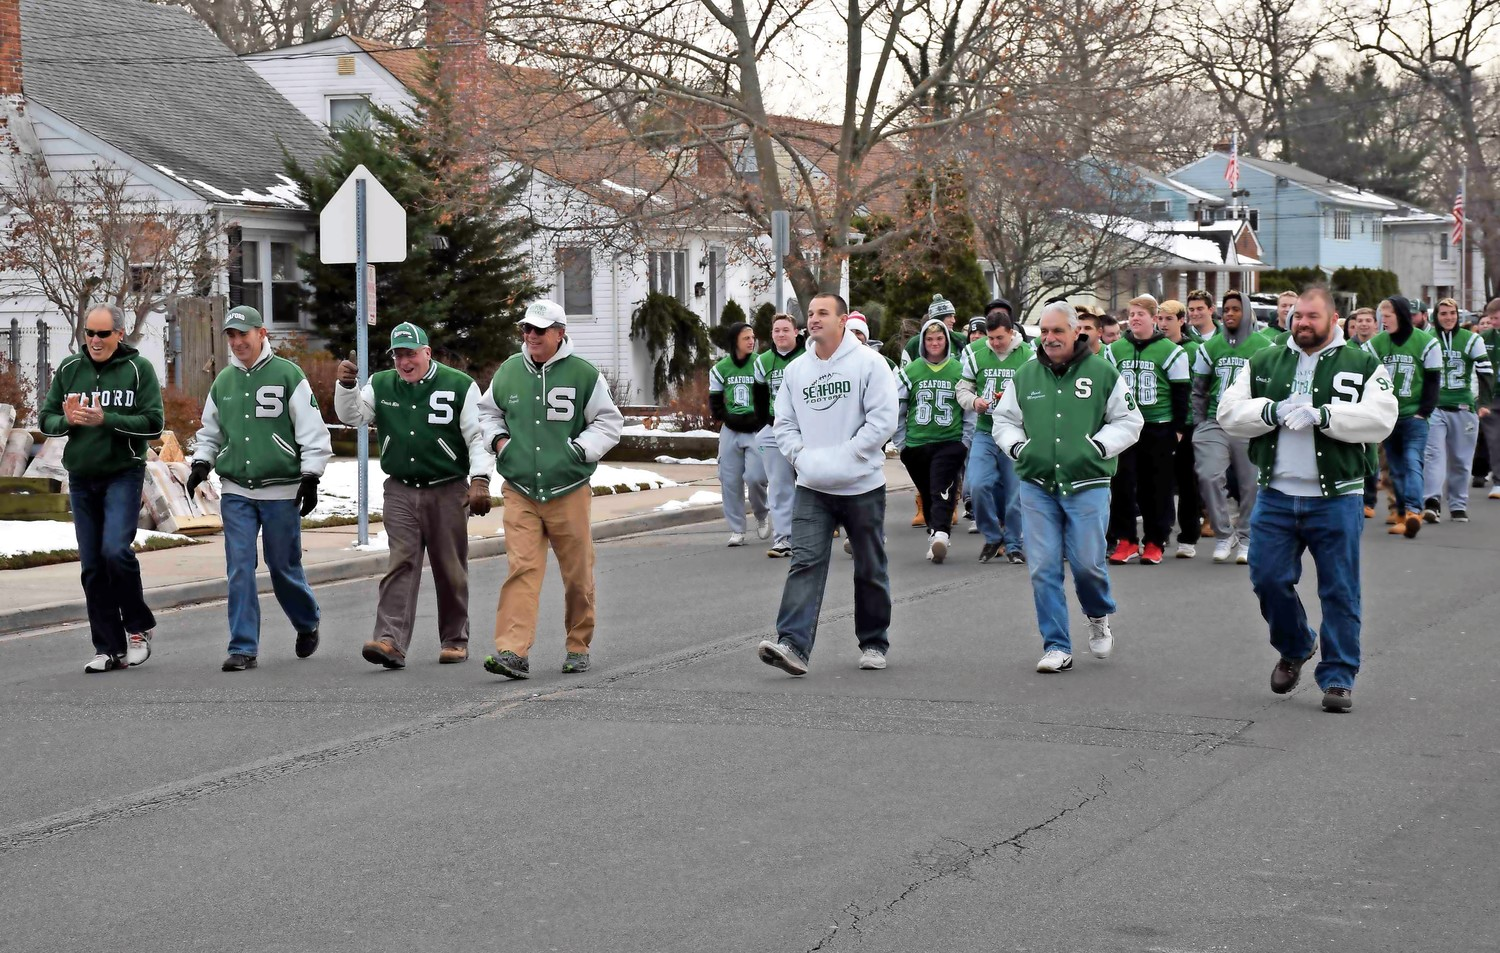 Seaford High School's football coaches and players marched on Washington Avenue during a Dec. 17 victory parade celebrating their Long Island title.